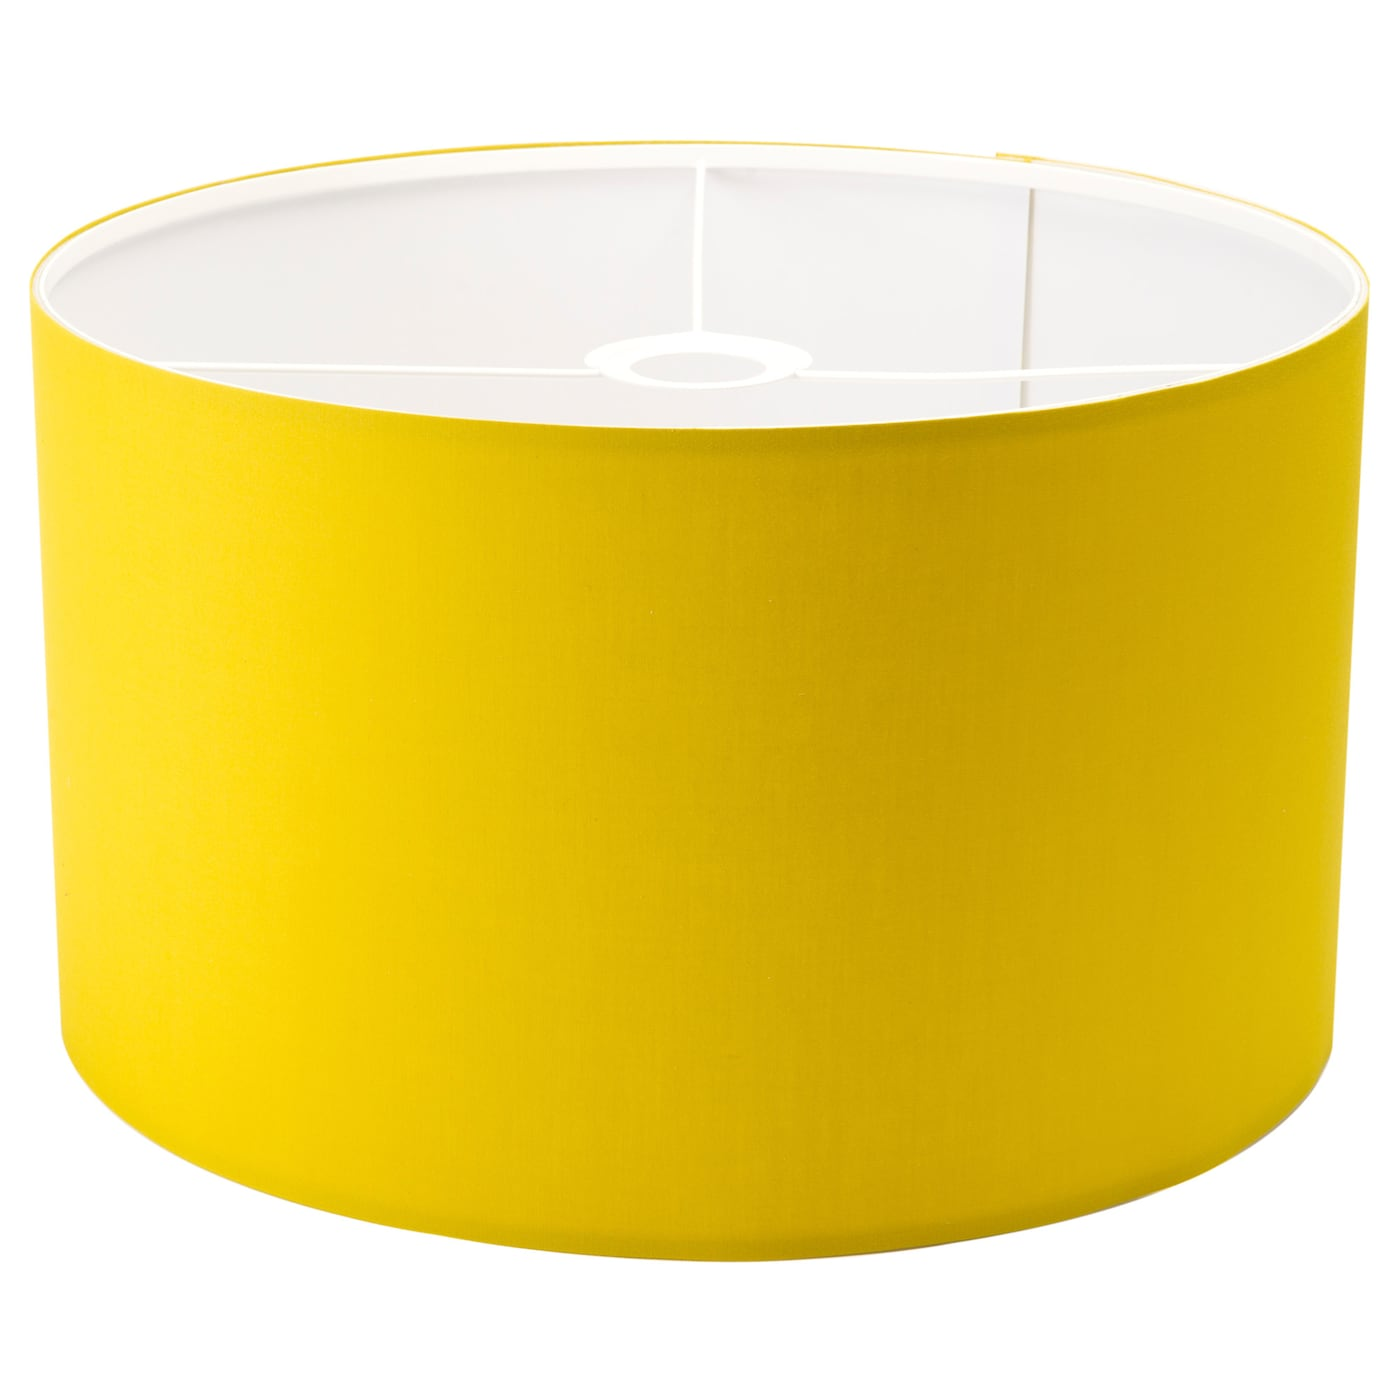 Rismon shade yellow green white 40 cm ikea - Abat jour jaune moutarde ...